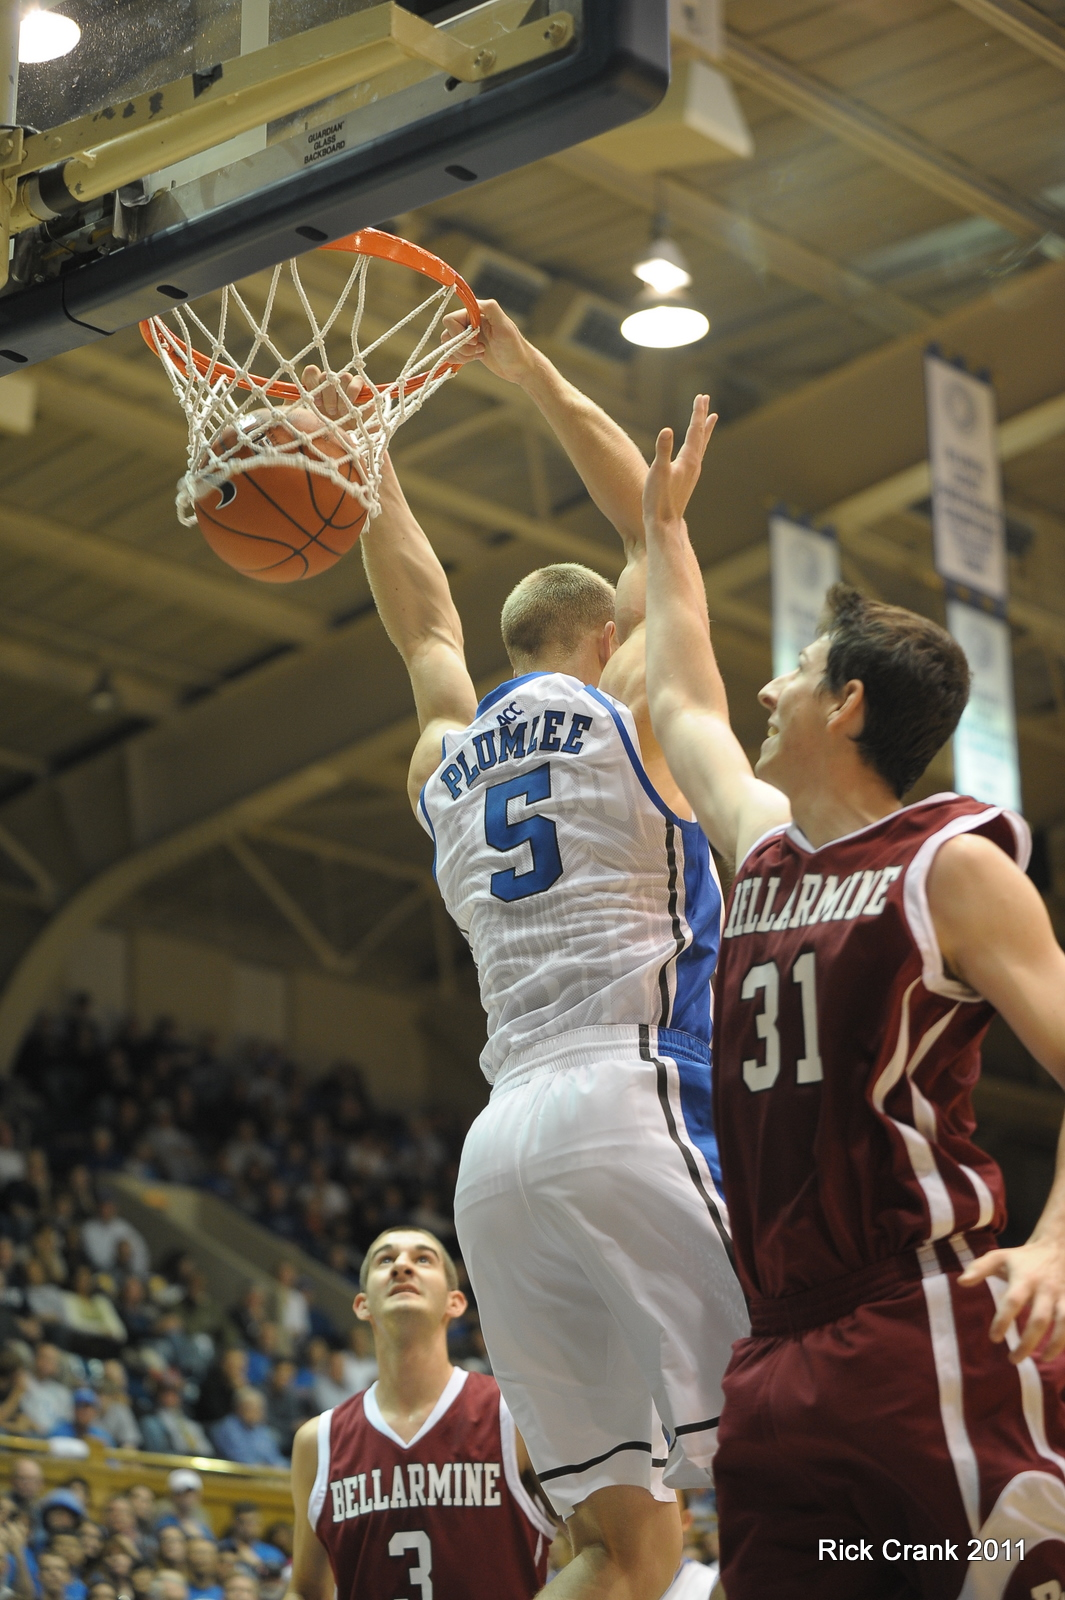 Mason slams one in vs Bellarmine - copyright BDN Photo